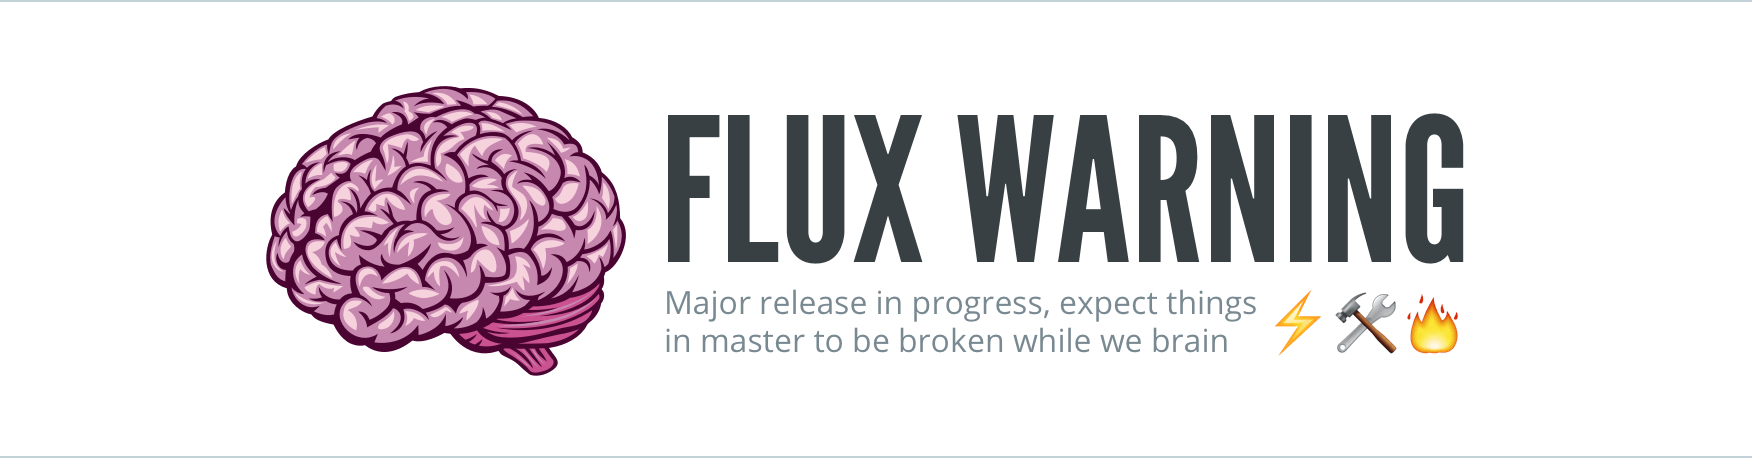 Warning: Major release in progress. Expect things to be broken in master.